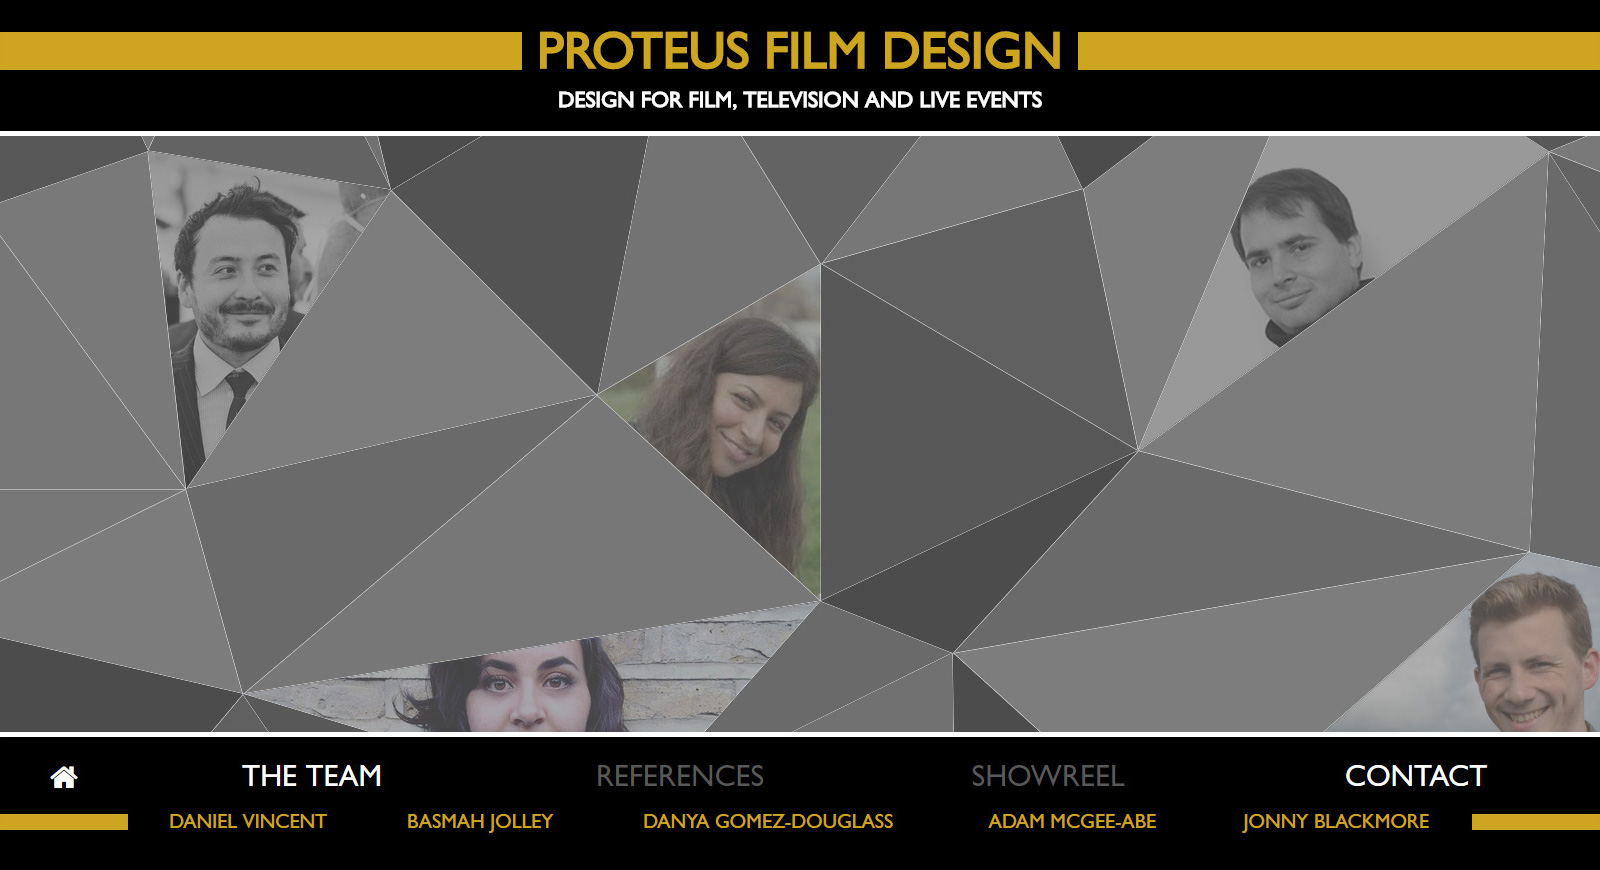 Proteus Film Design team weboldala 2